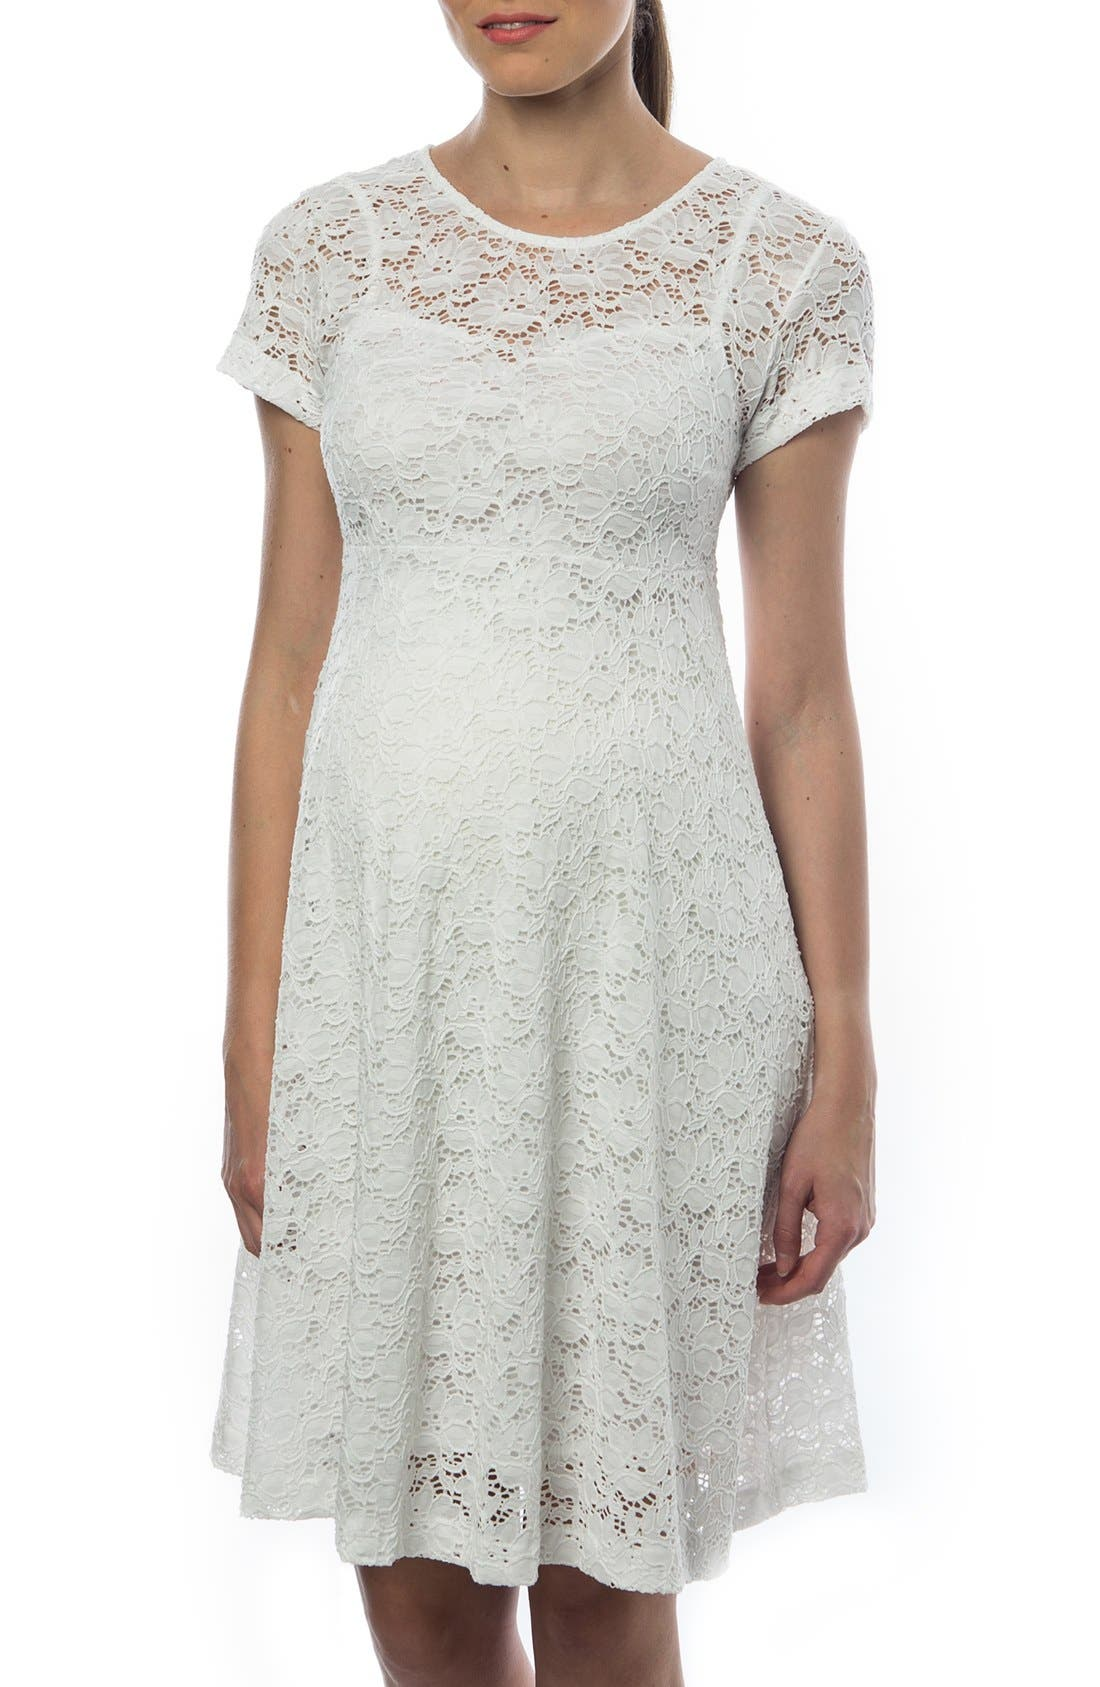 'Rodano' Lace Maternity Dress,                         Main,                         color,